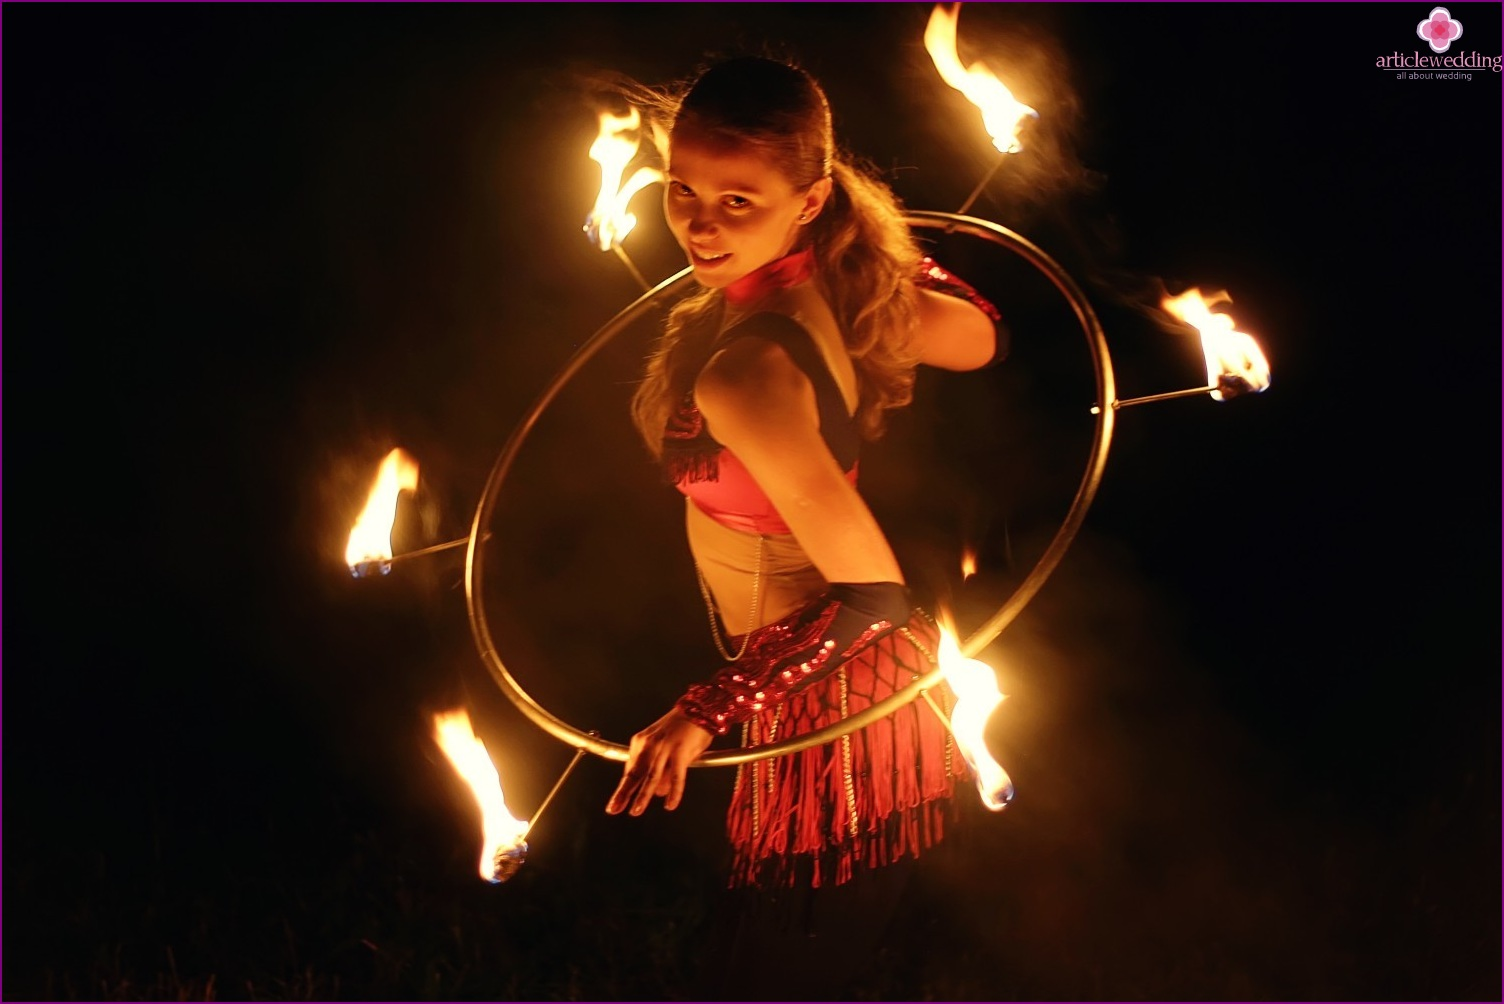 Fire show for a wedding in the style of masquerade